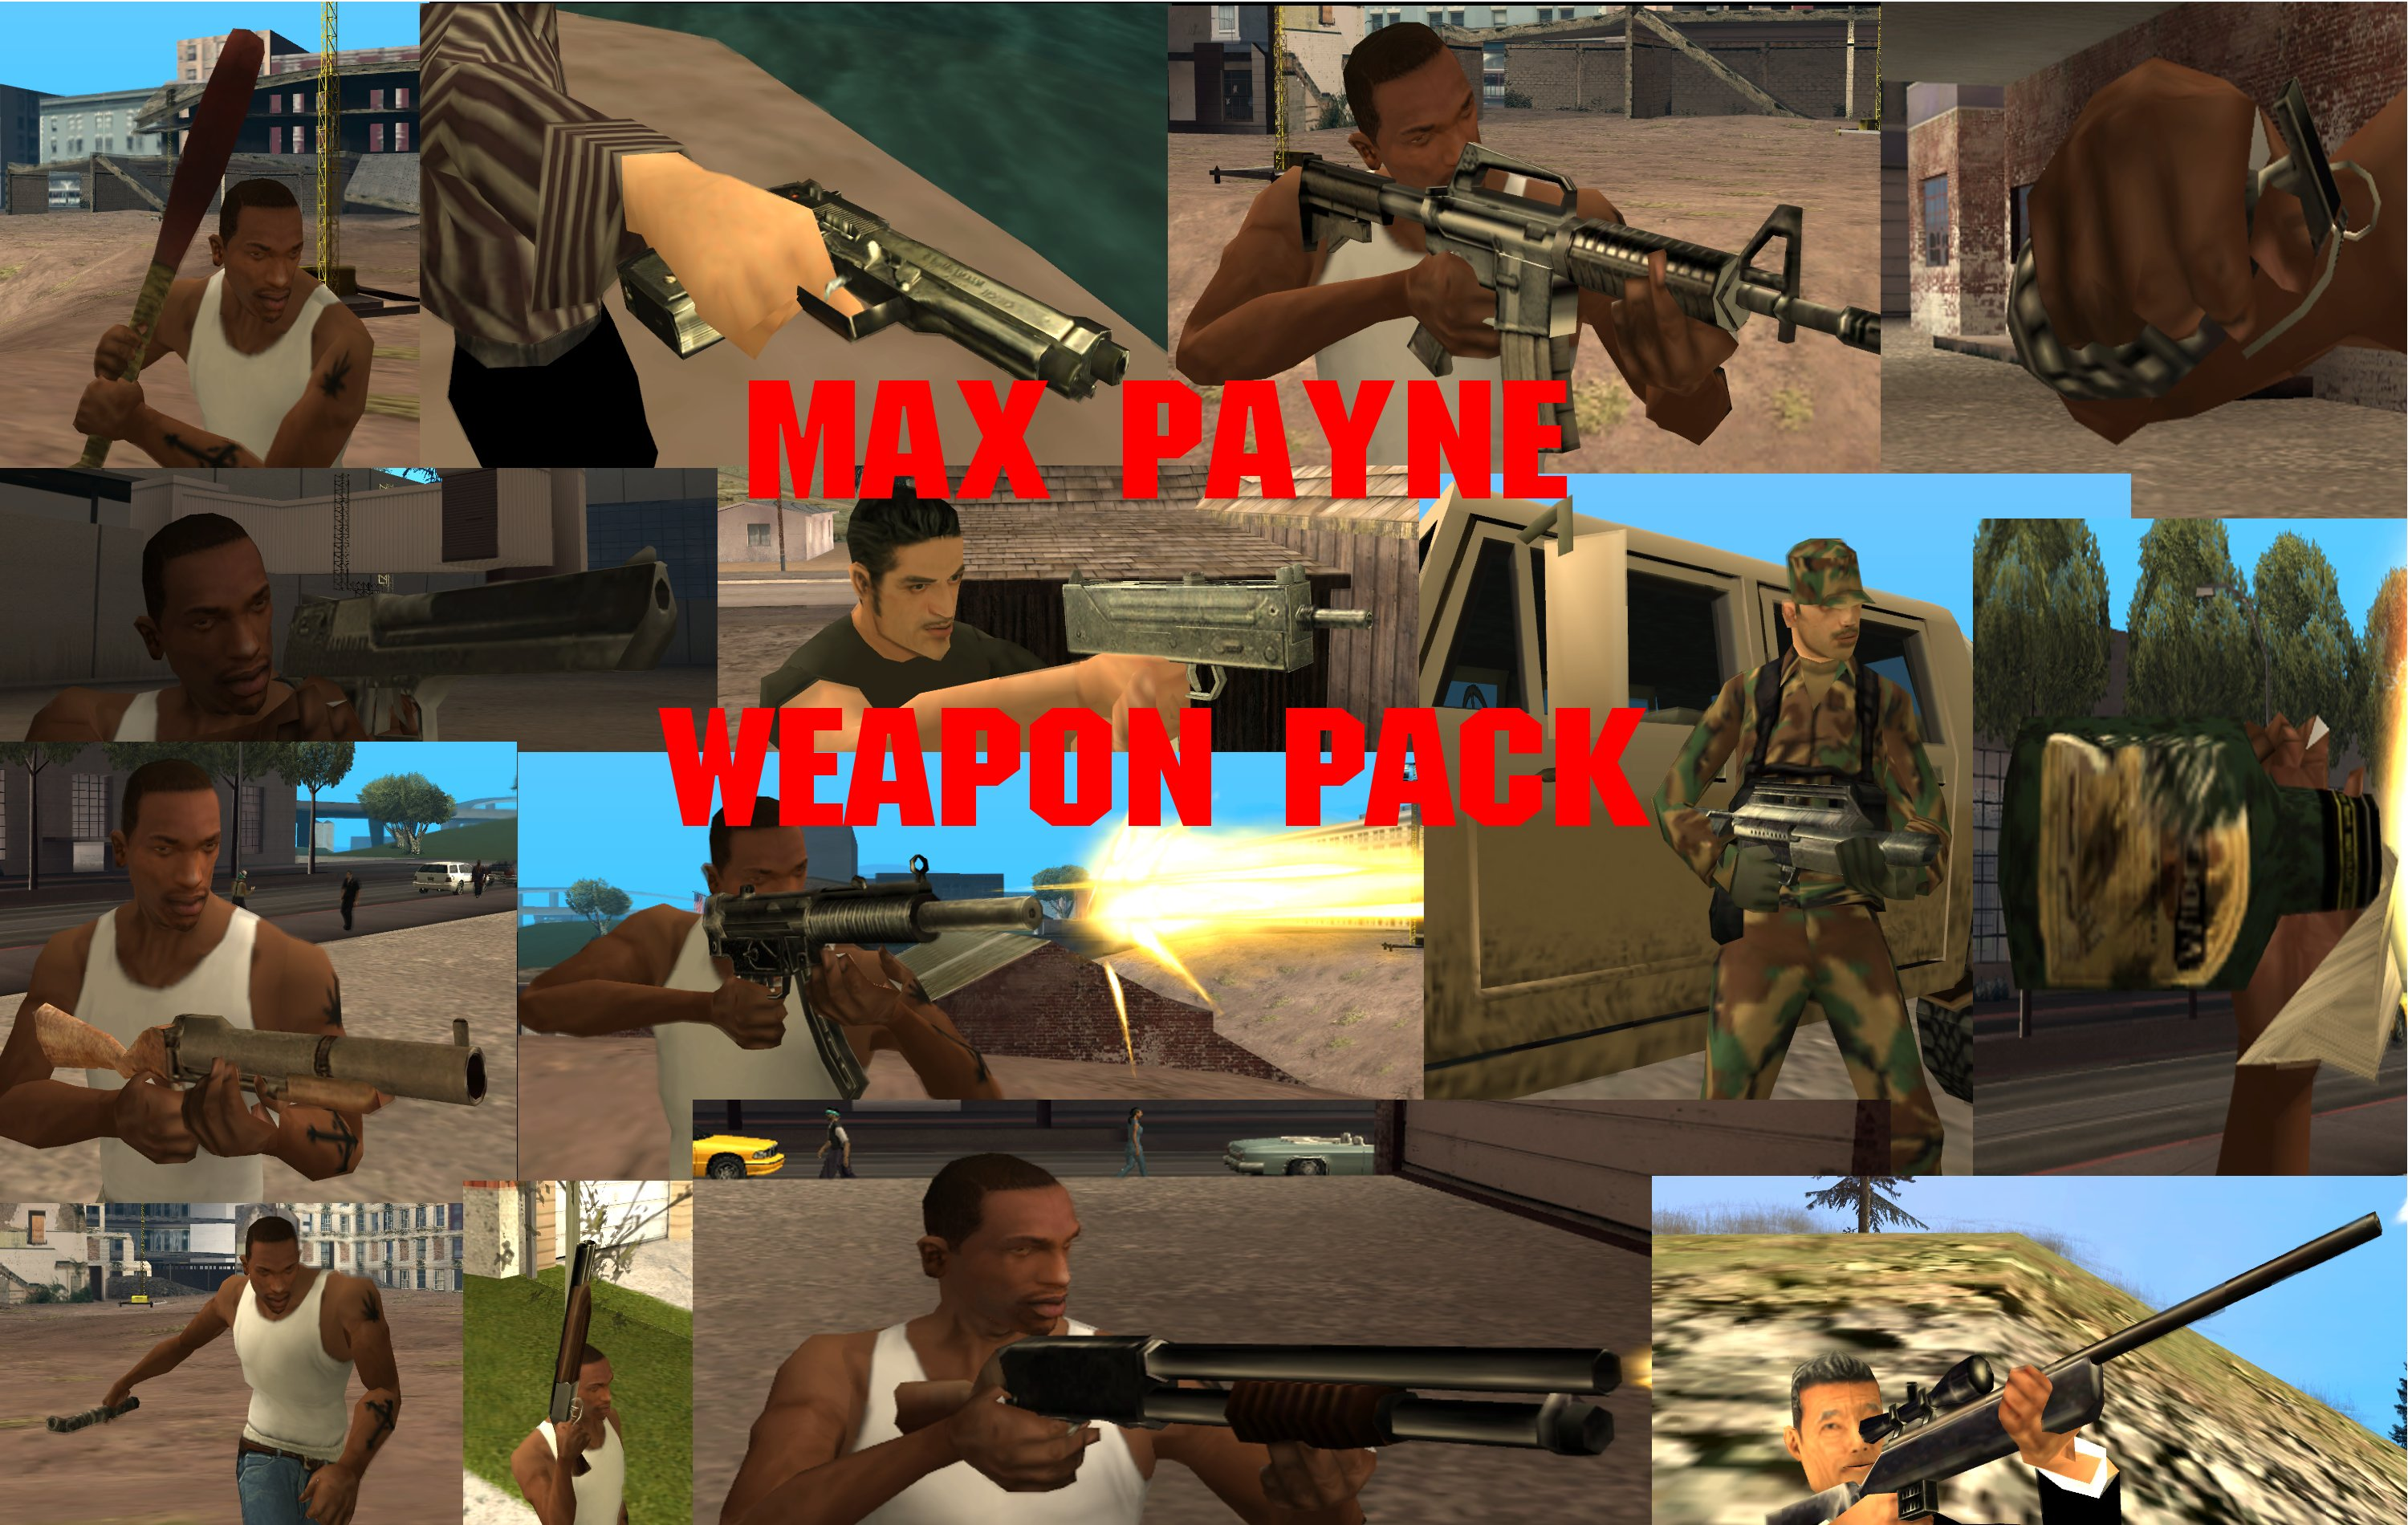 Max Payne Weapon Pack (San Andreas Edition) addon - Mod DB